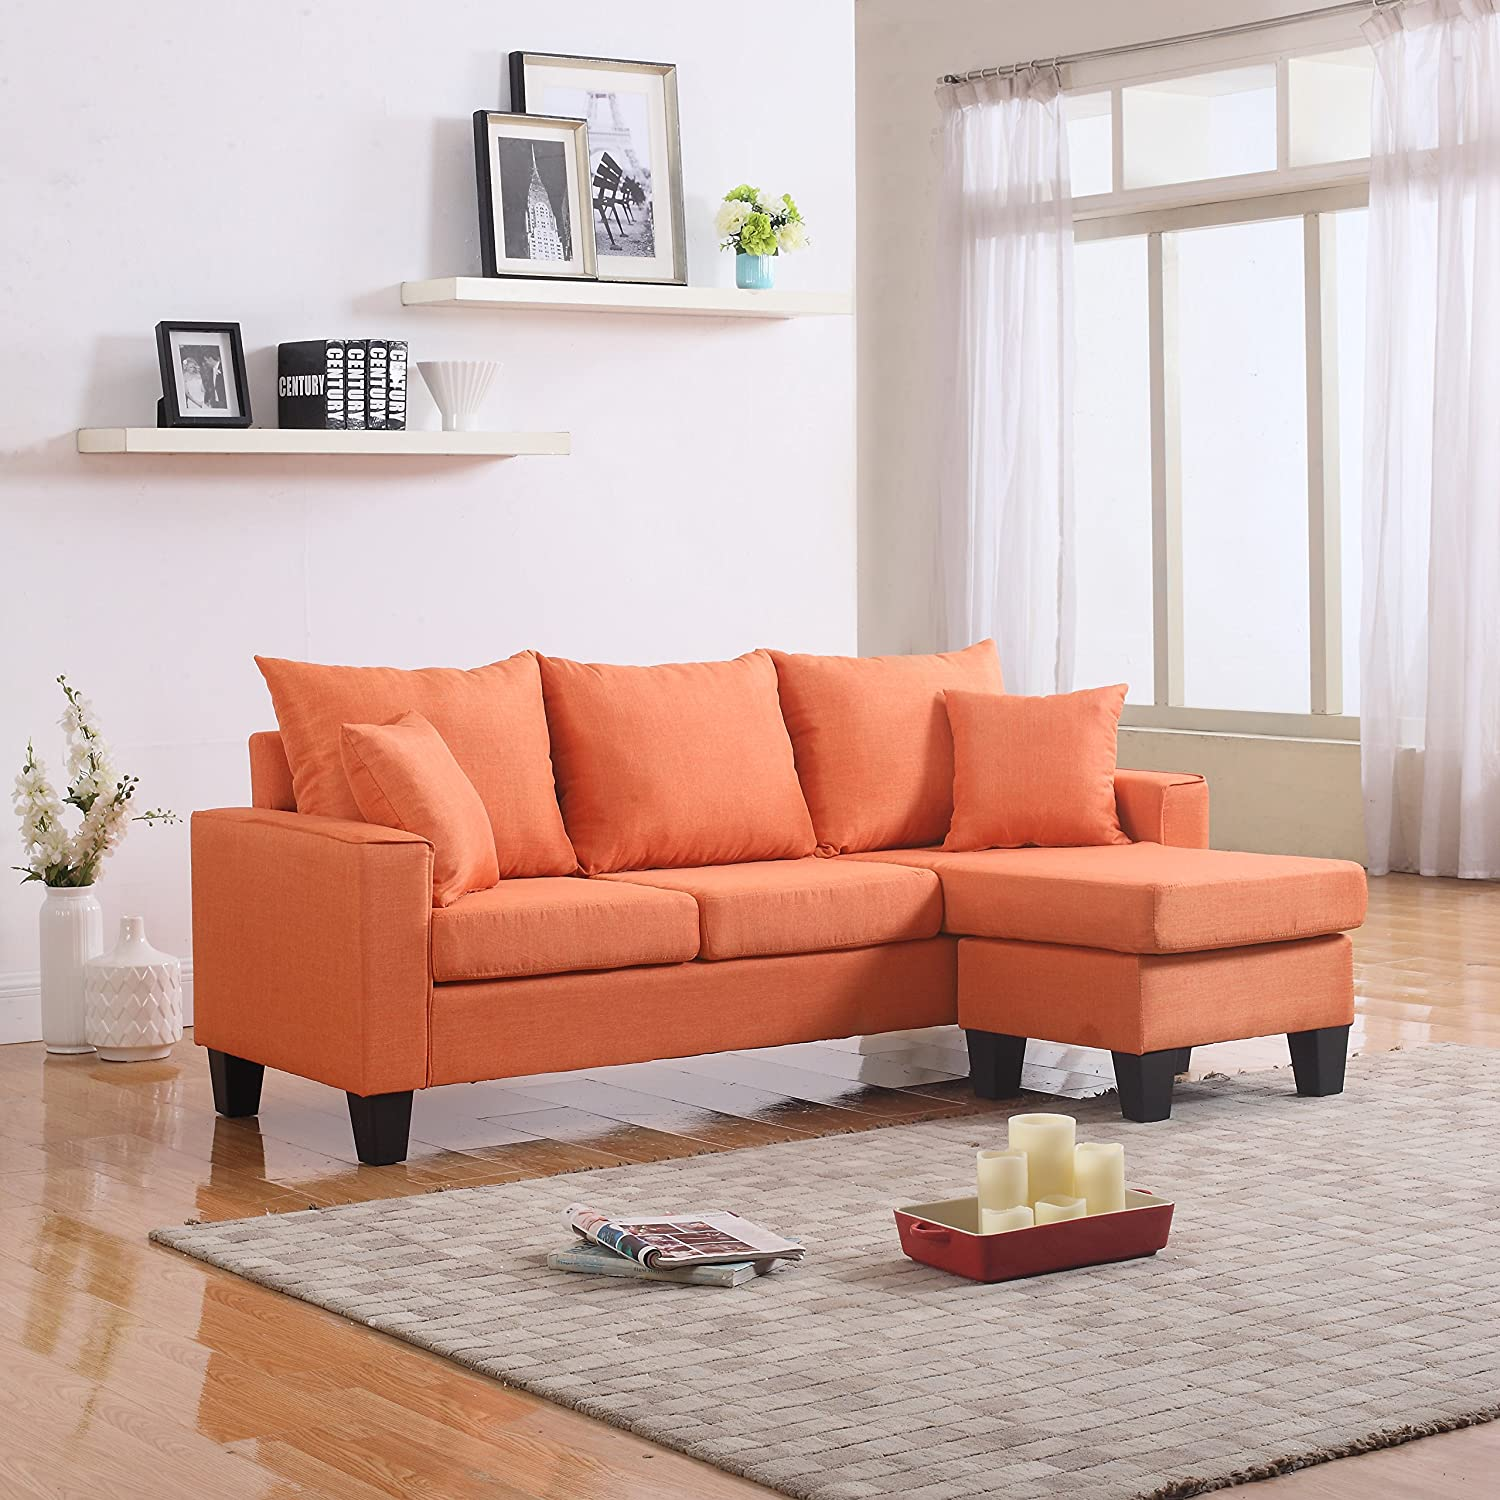 Amazon com divano roma furniture modern linen fabric small space sectional sofa with reversible chaise orange kitchen dining